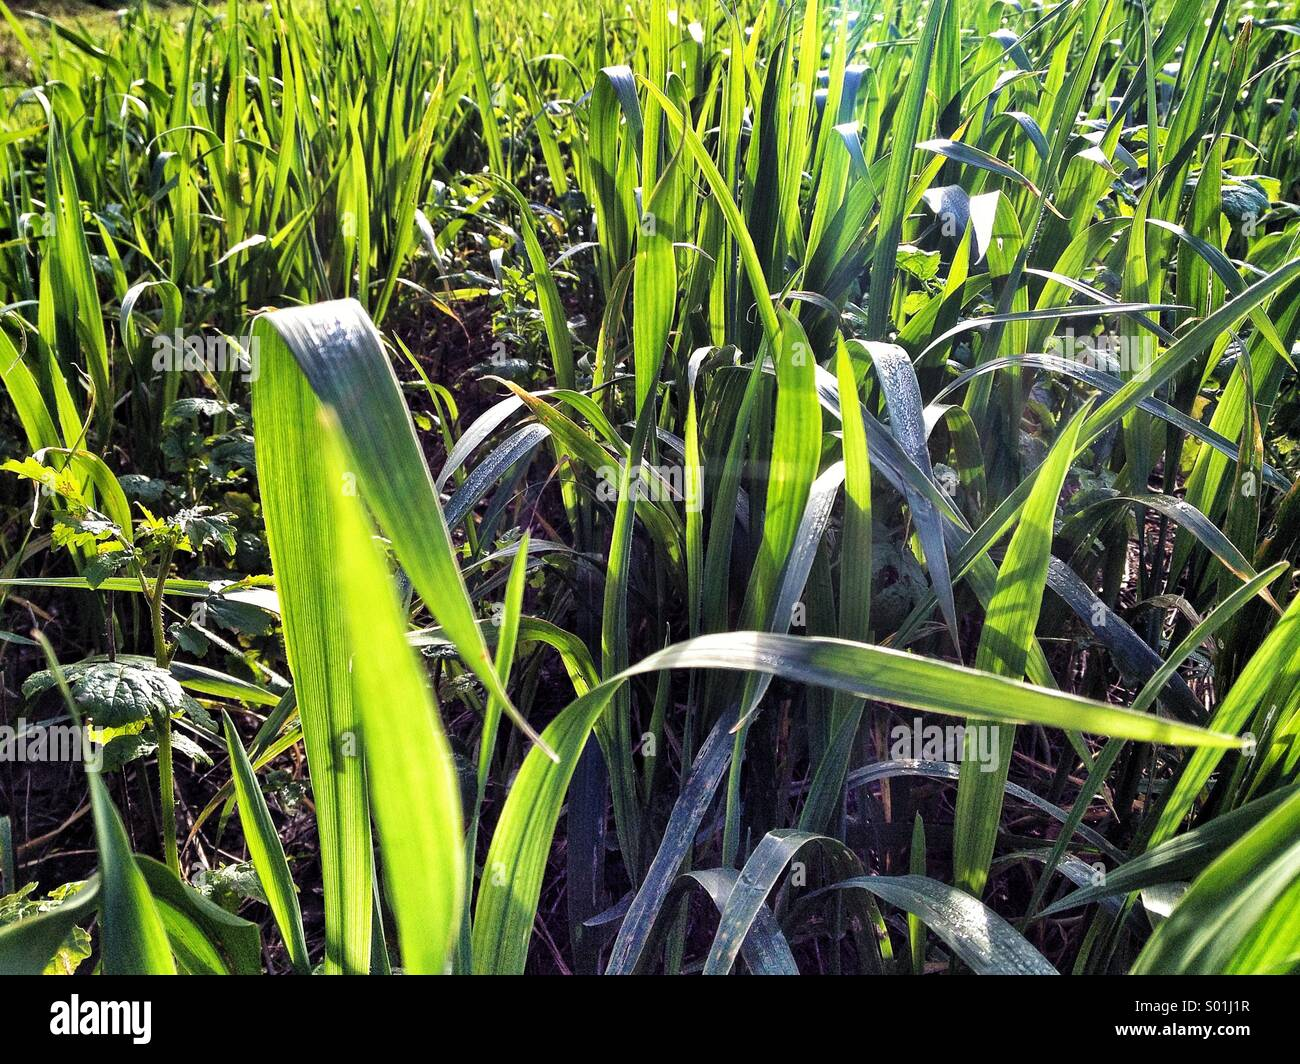 Blades if grass close up - Stock Image